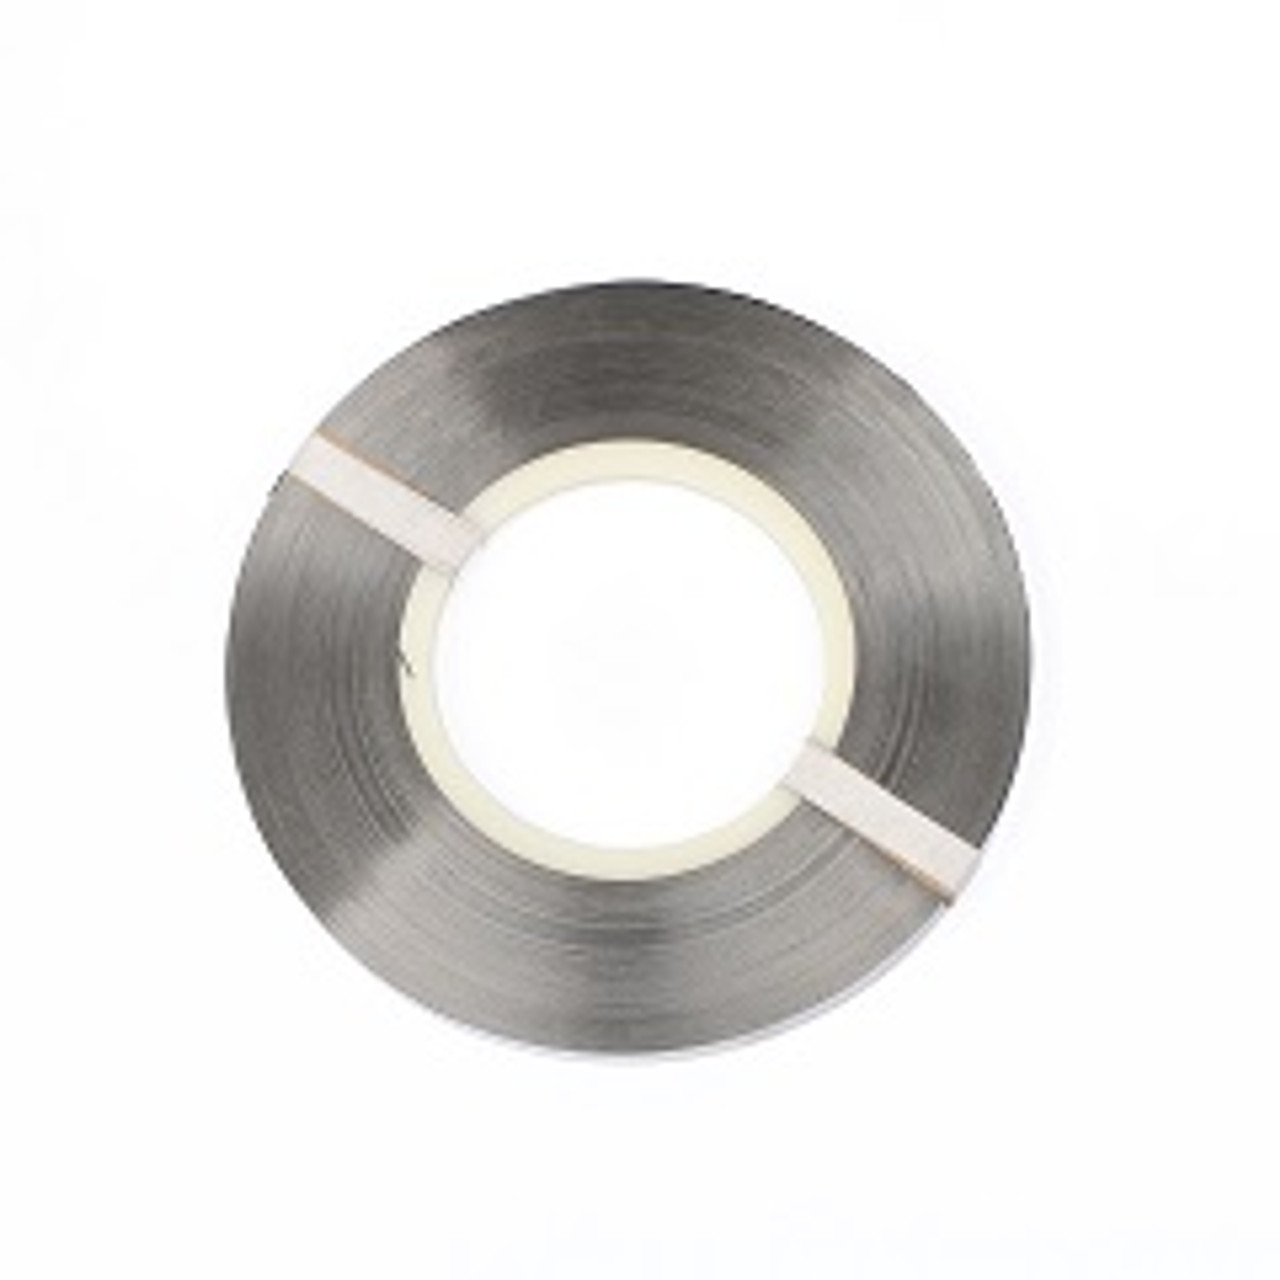 0.15x8mm 1kg(approx. 307ft) Pure Nickel Strip for High Capacity 18650 Lithium Battery Packs